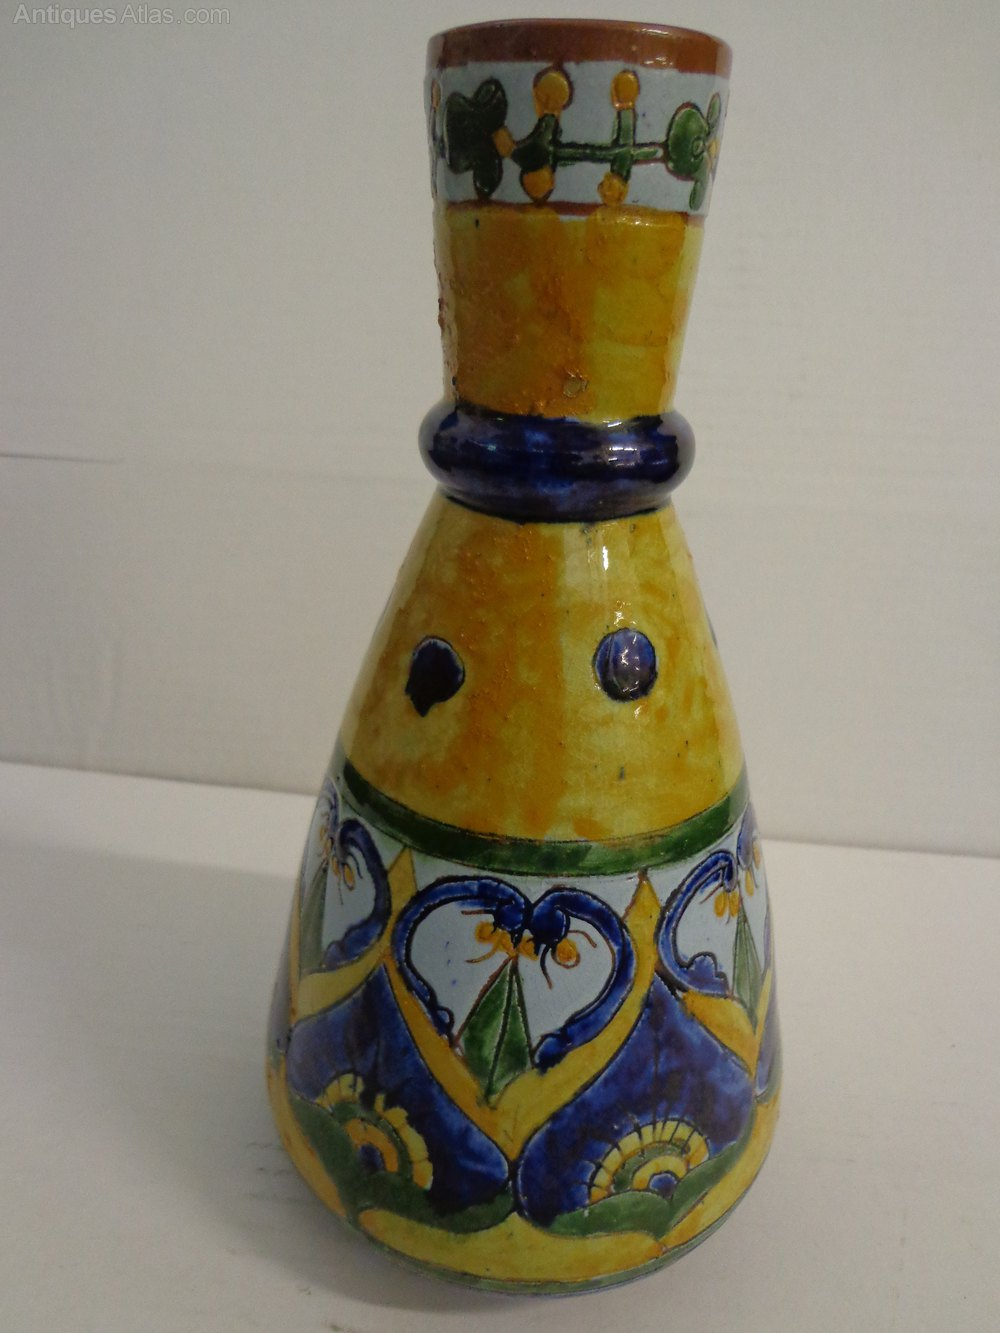 Antiques atlas carlo manzoni art pottery vase other makers carlo manzoni minerva art ware manufacturers reviewsmspy